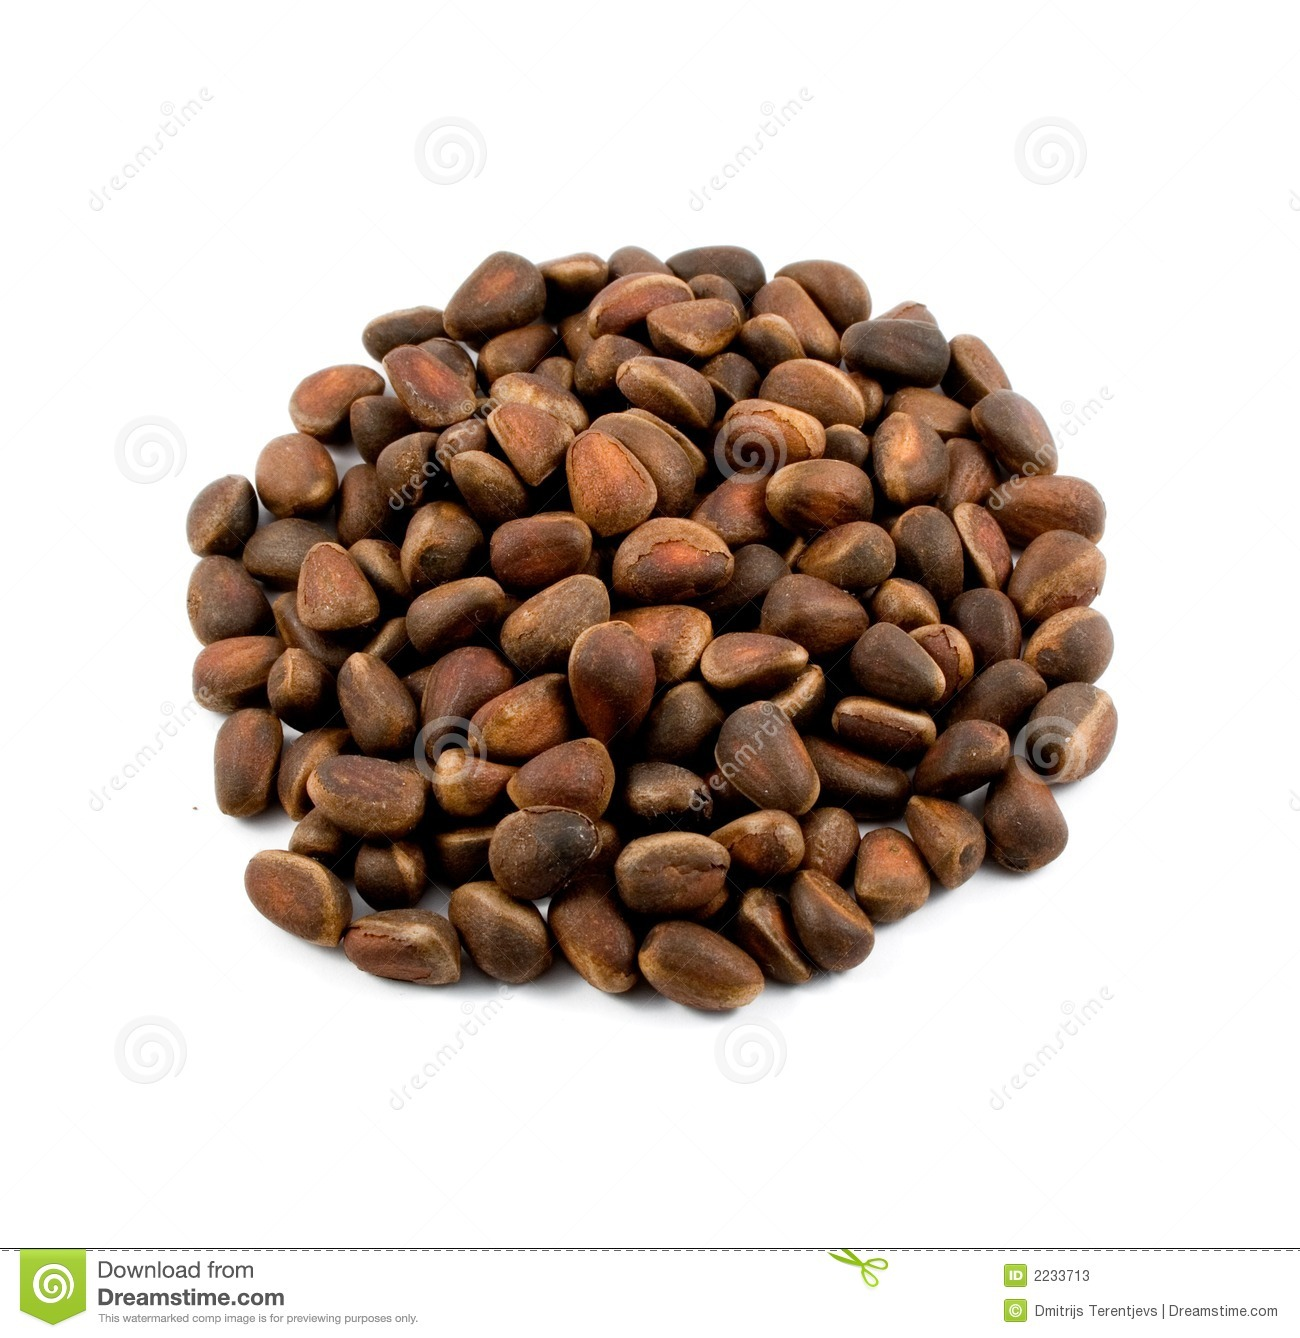 how to find pine nuts